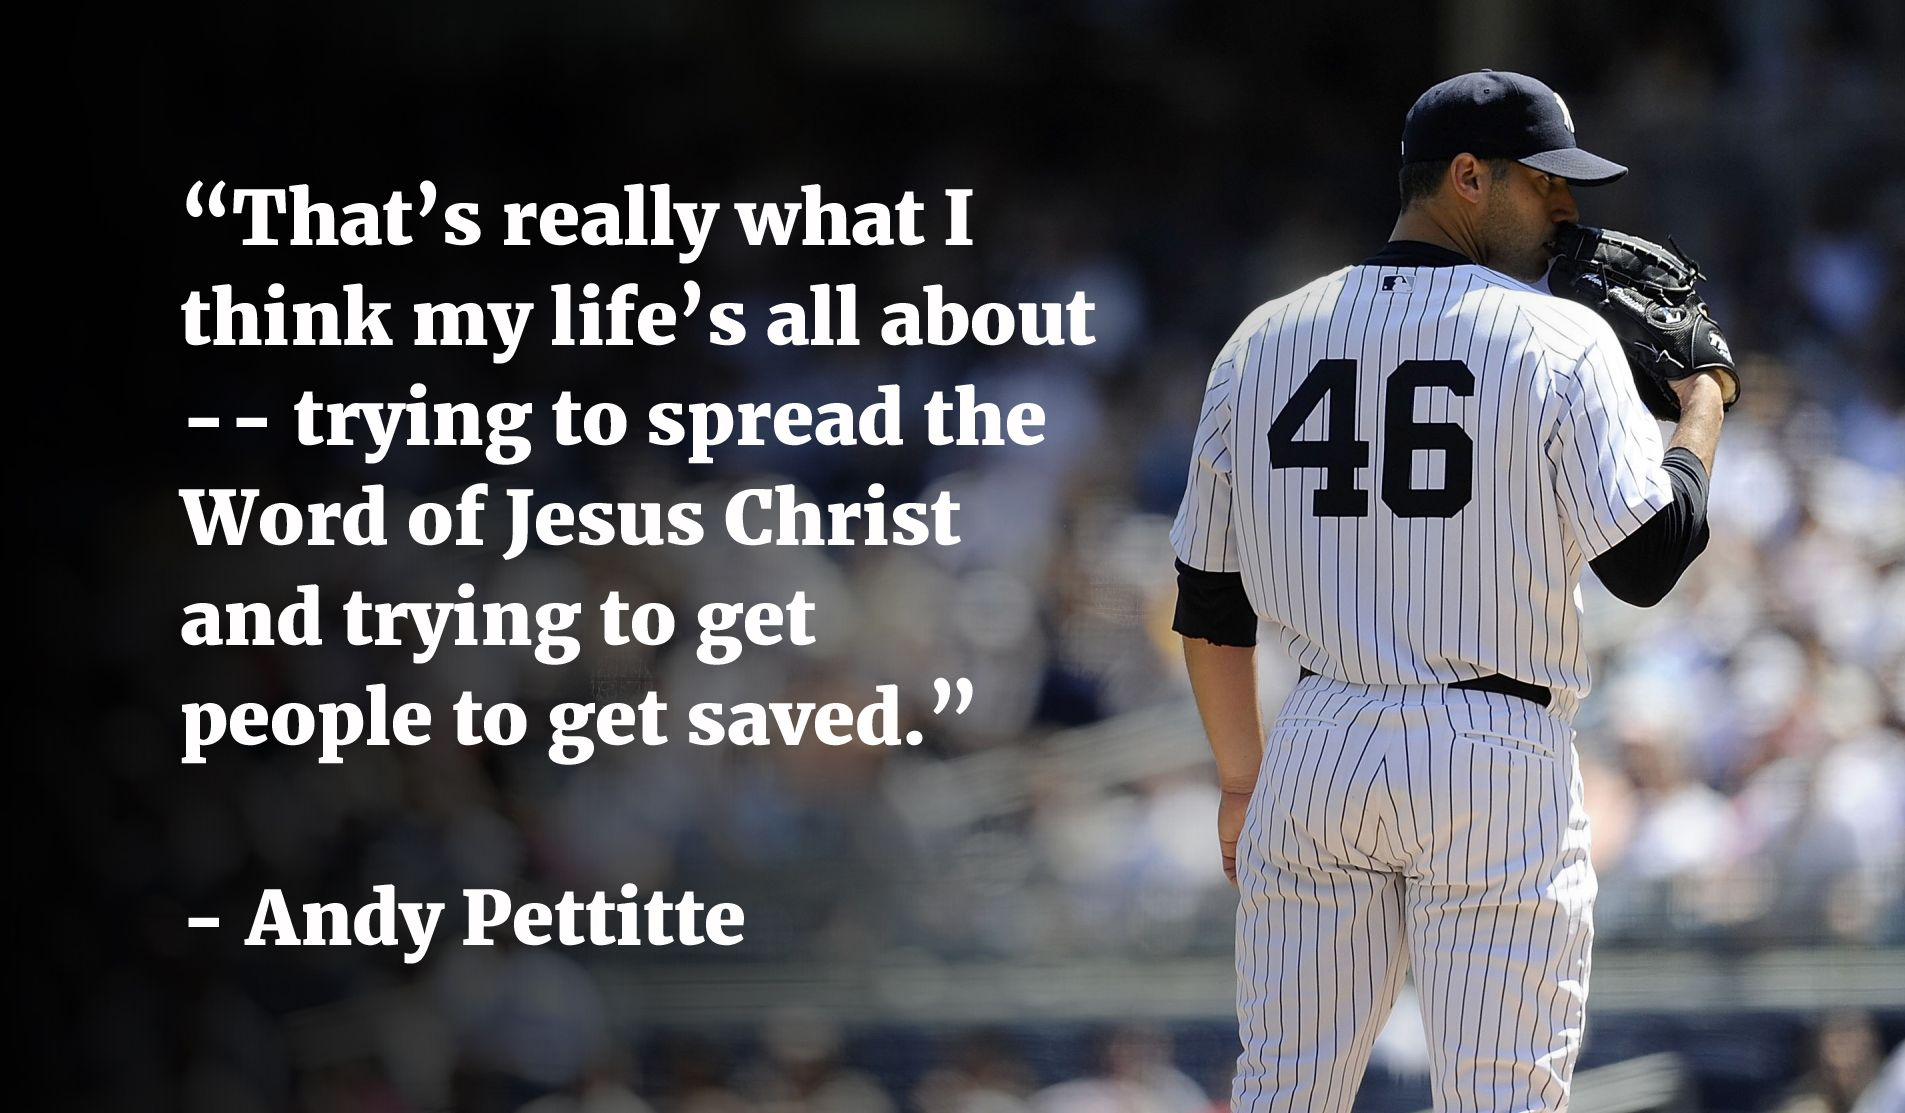 We Ve Highlighted 8 Mlb Players And Their Most Inspiring Quotes About Living For God I Baseball Inspirational Quotes Baseball Motivational Quotes Player Quotes